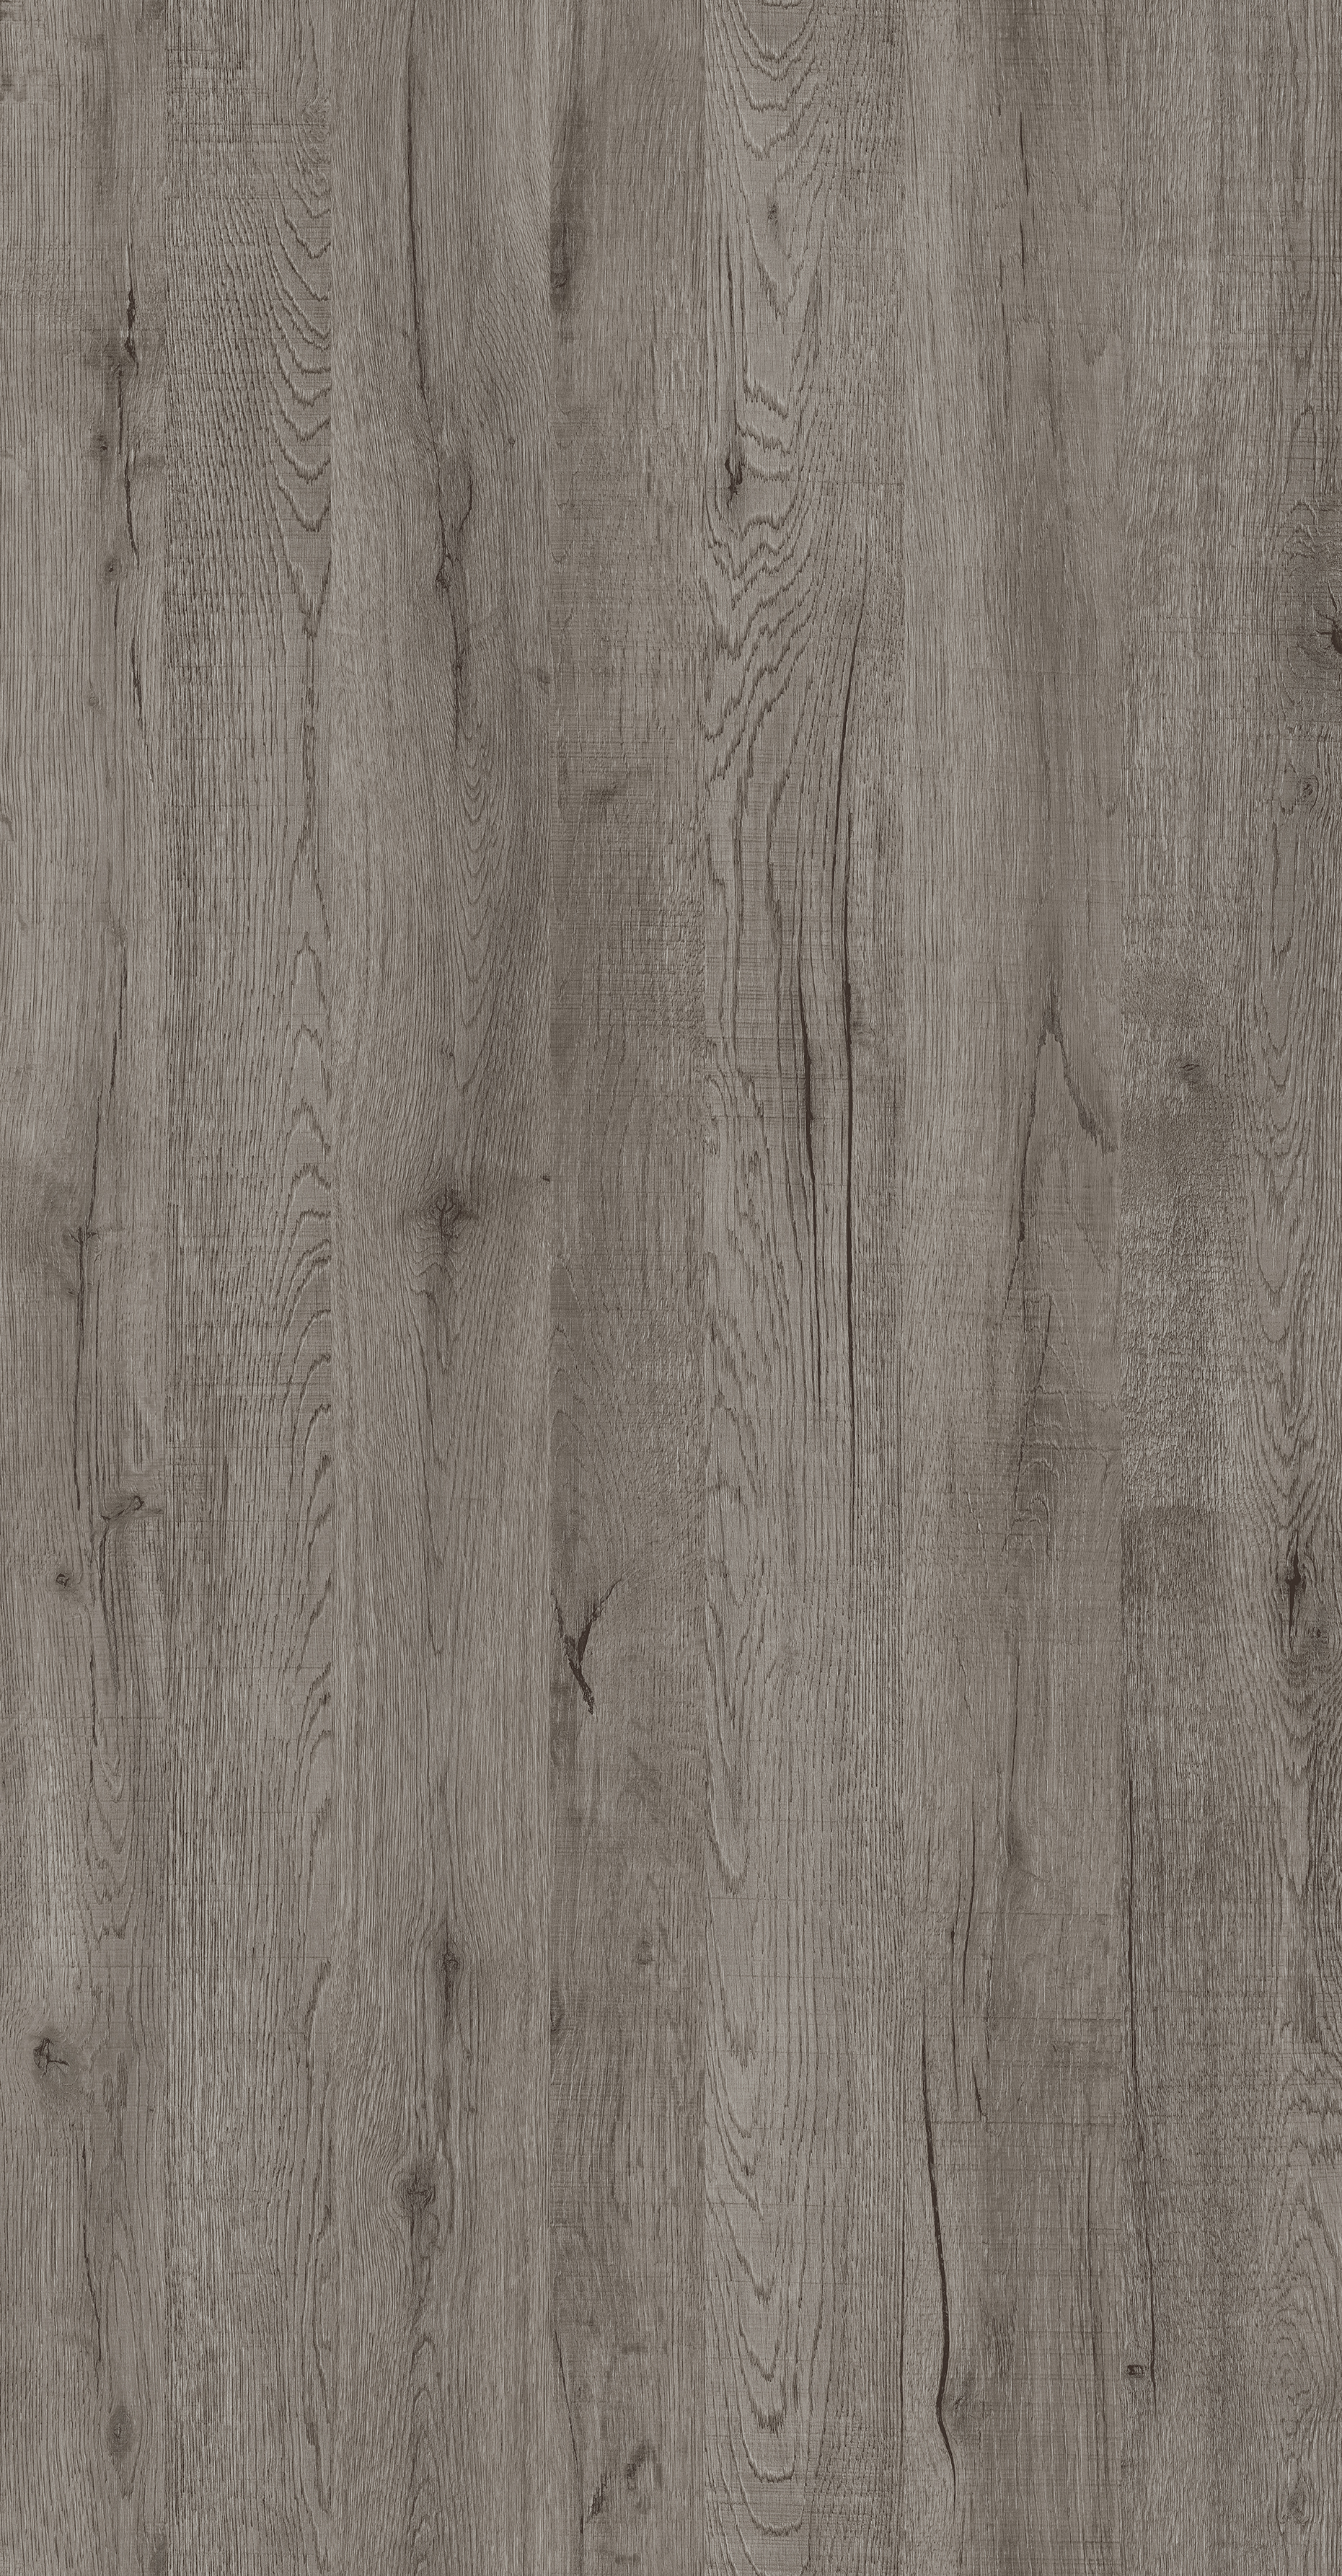 Bartex OAK